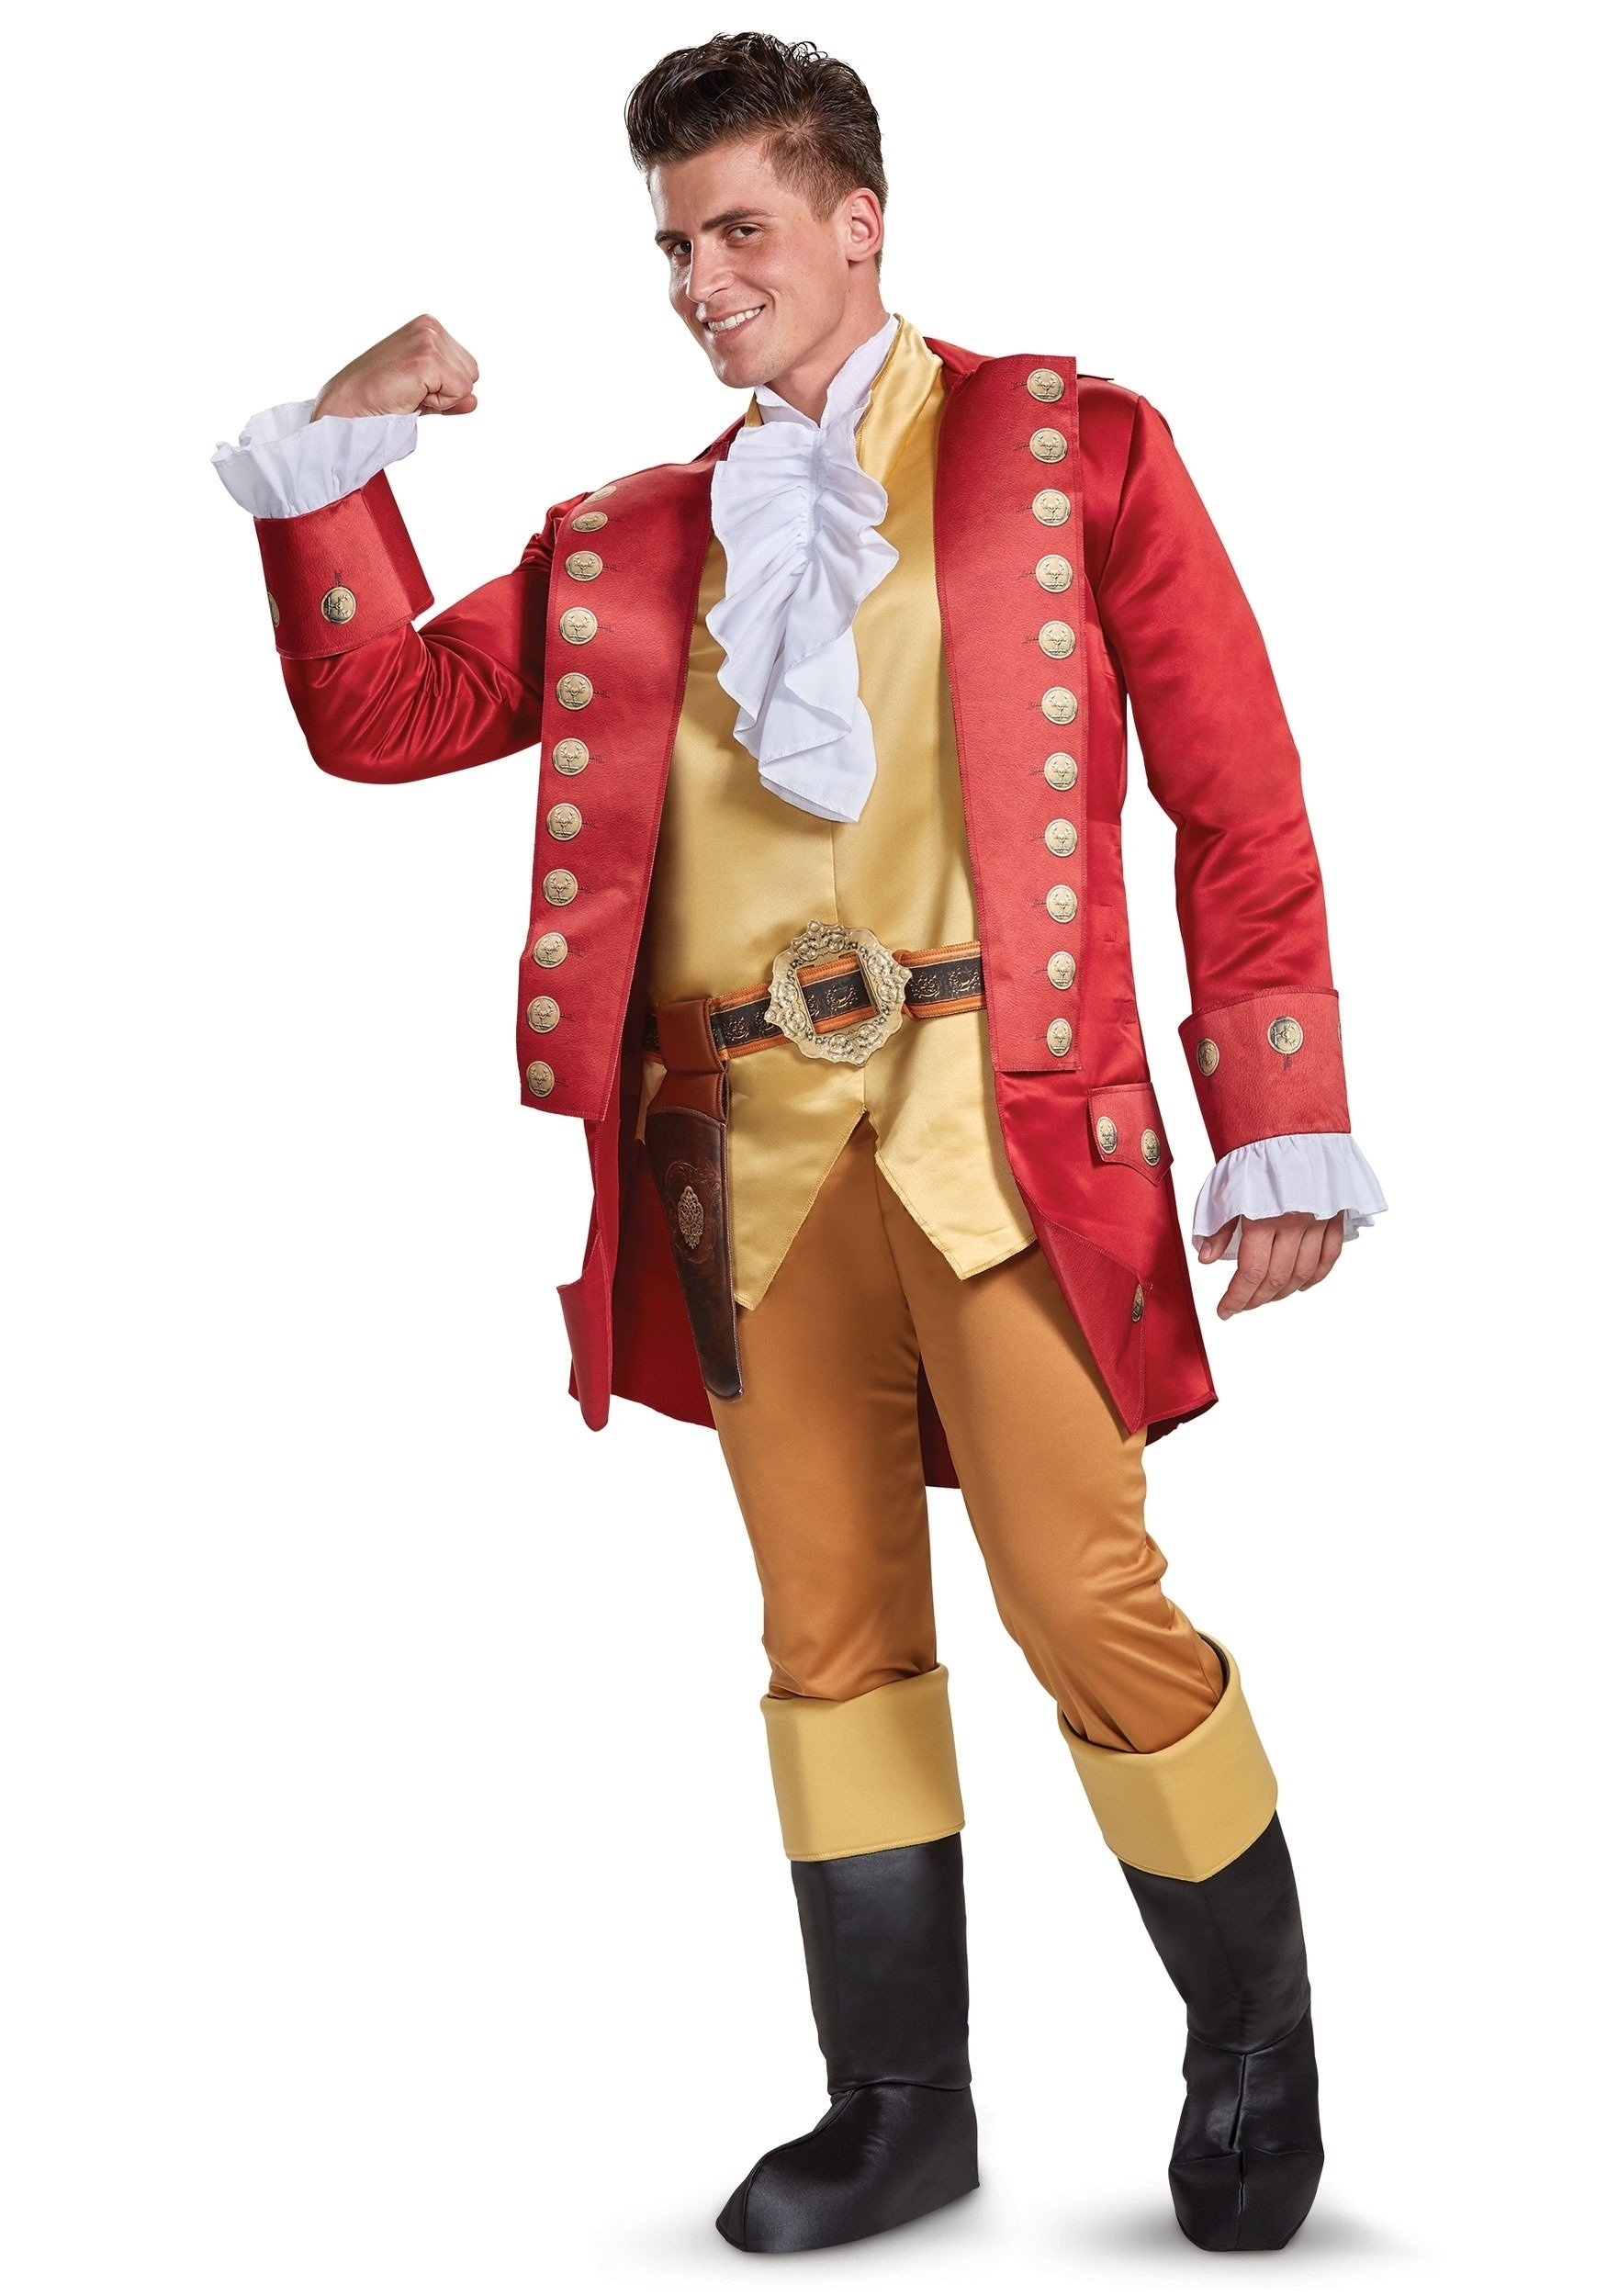 10 Unique Cool Costume Ideas For Guys beauty and the beast costumes halloweencostumes 2020